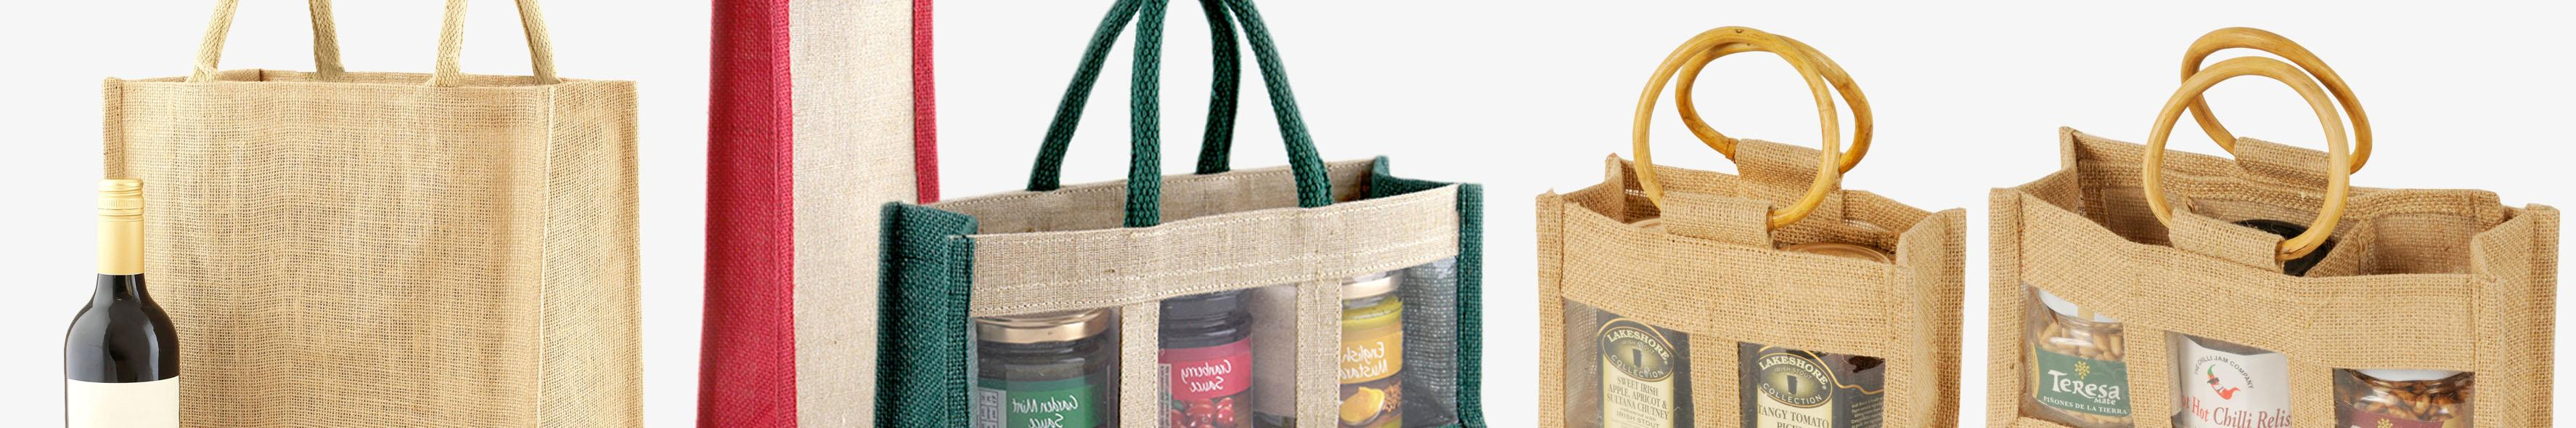 Jute Jar & Bottle Bags